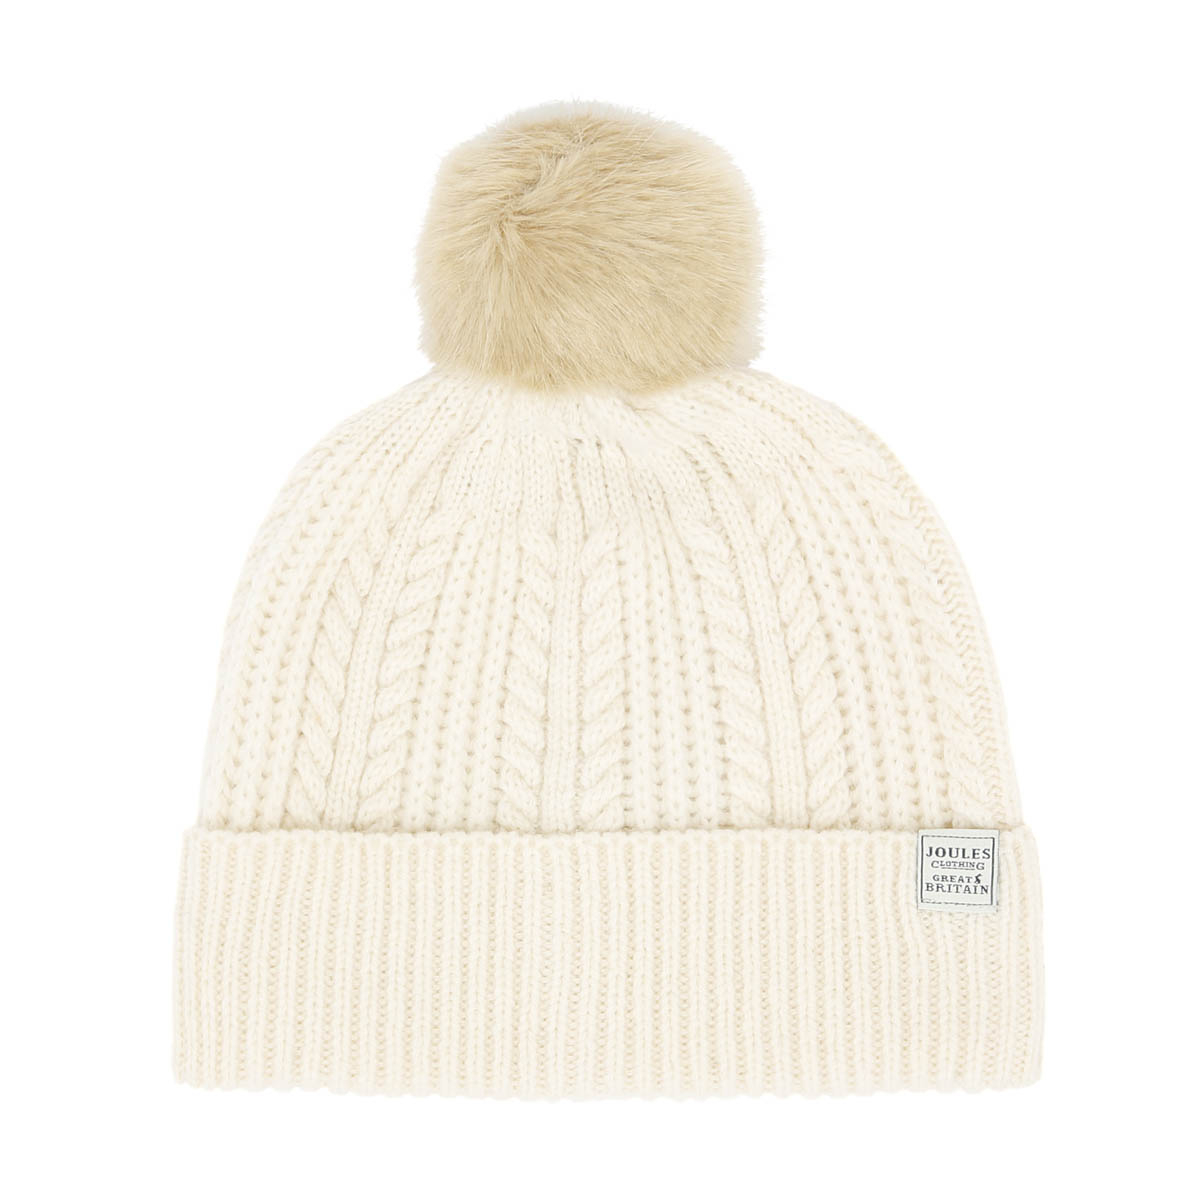 8b09bf6f720469 Details about Joules Unisex Bobble Cream Hat Cable Knit Warm Winter Beanie